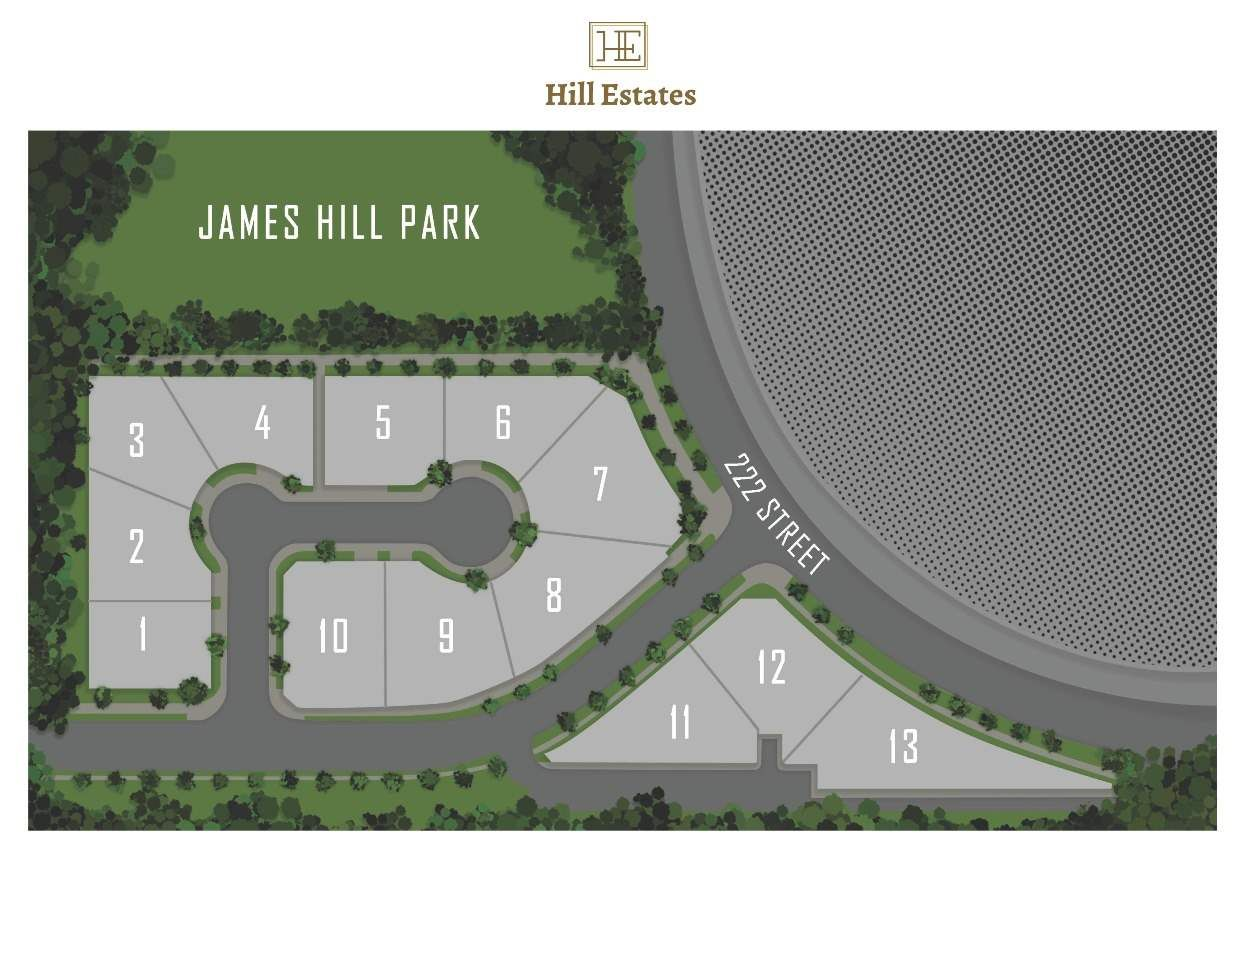 """Main Photo: Lot 8 4467 222 Street in Langley: Murrayville Land for sale in """"Hill Estates"""" : MLS®# R2553782"""